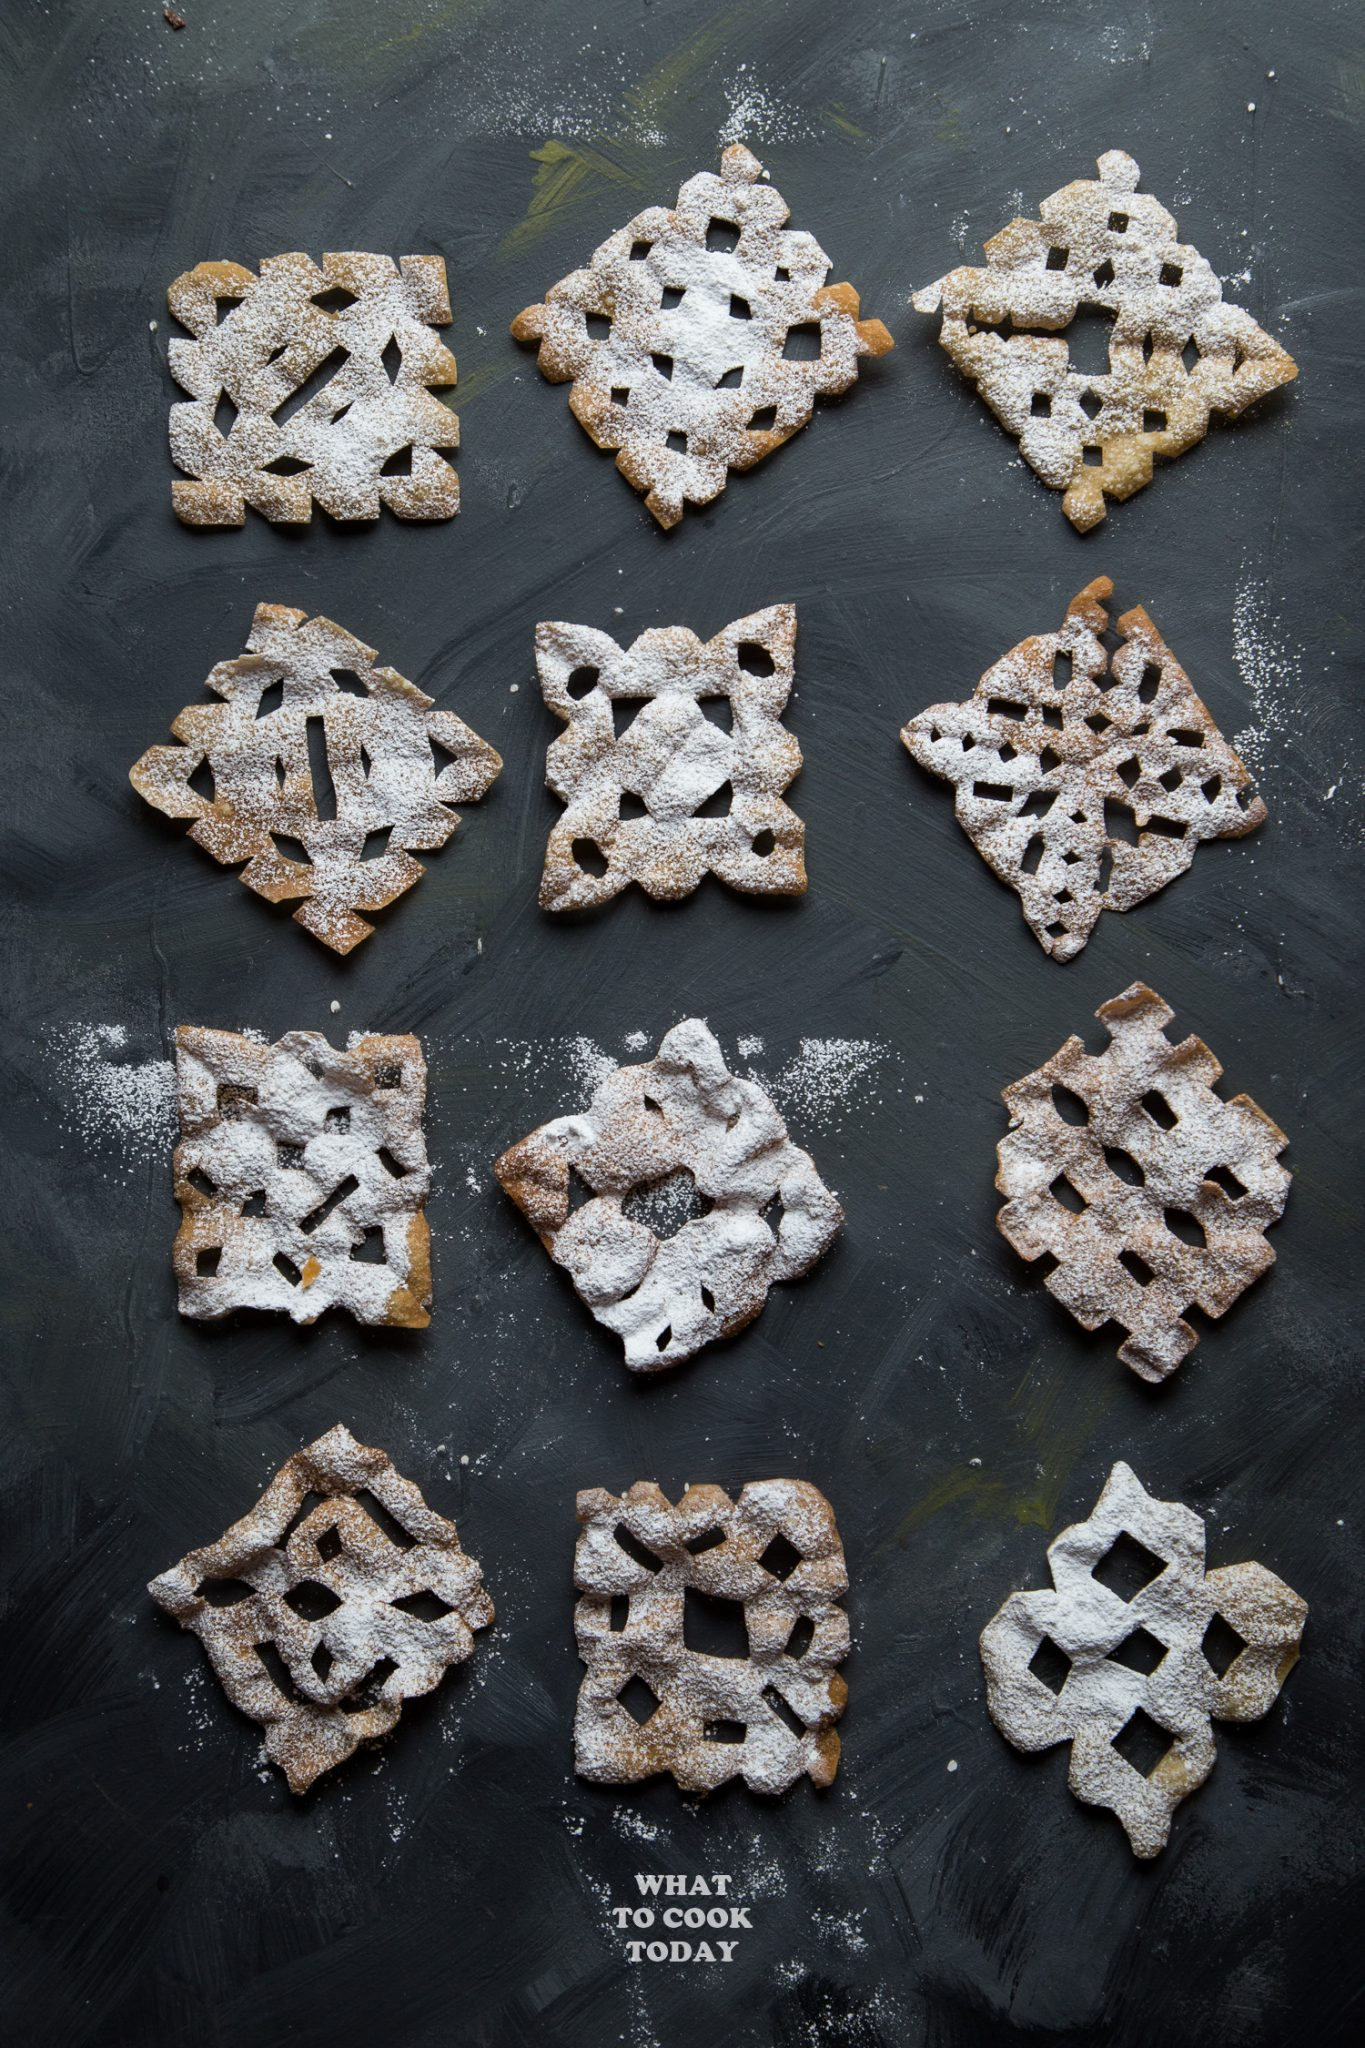 Swedish Rosettes Wannabe (made with wonton wrappers) #vegan #swedishrosettes #rosettes #christmas #easyrecipe